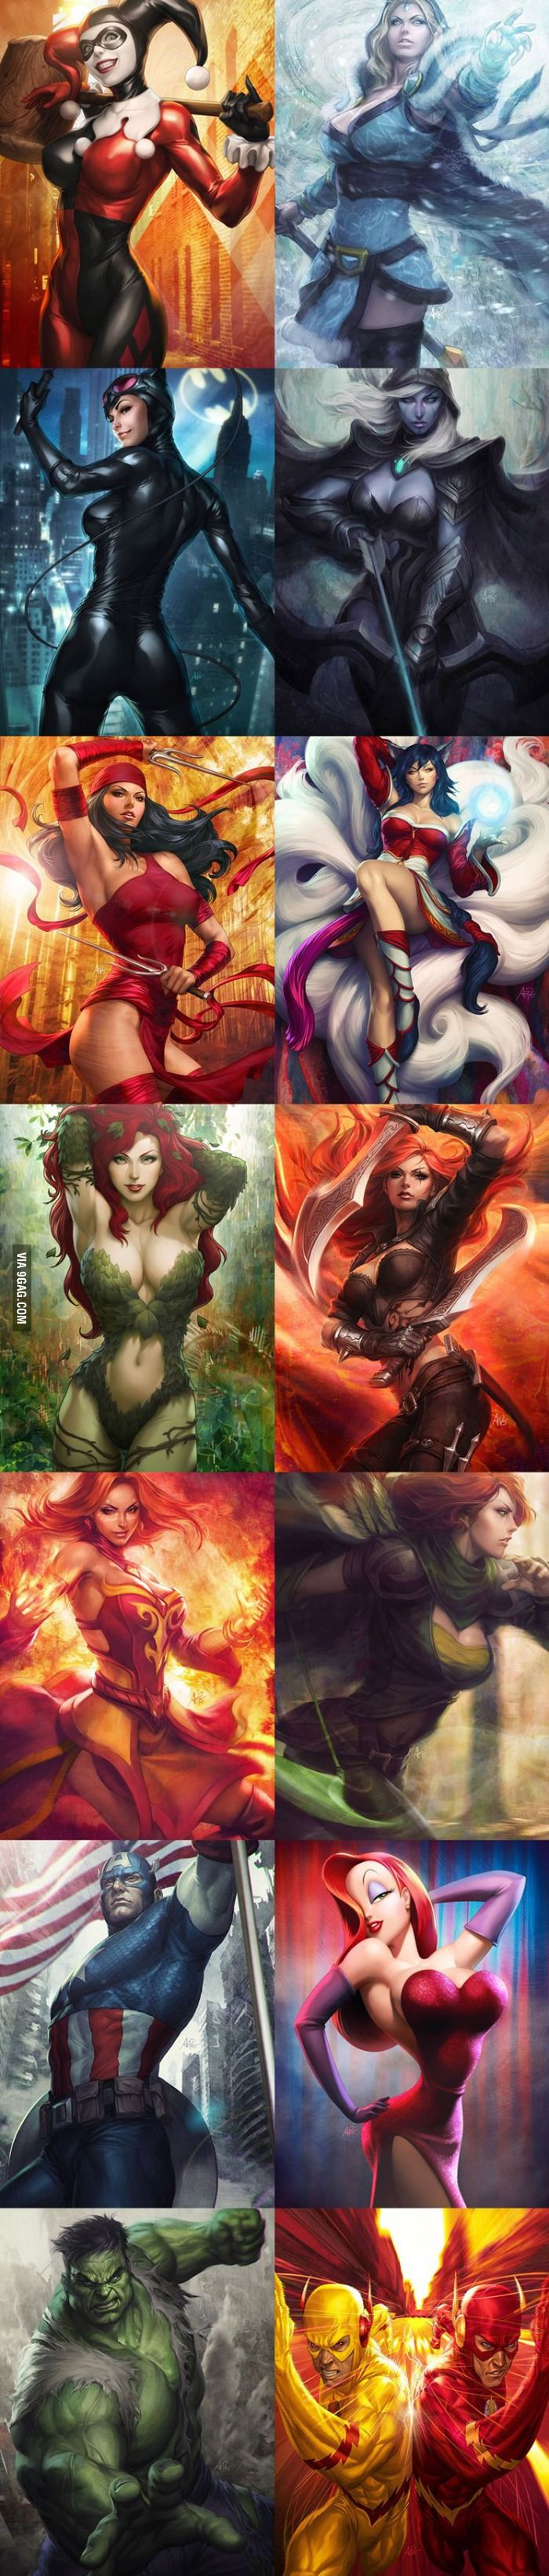 Some Badass Characters Drawn In A Badass Way!